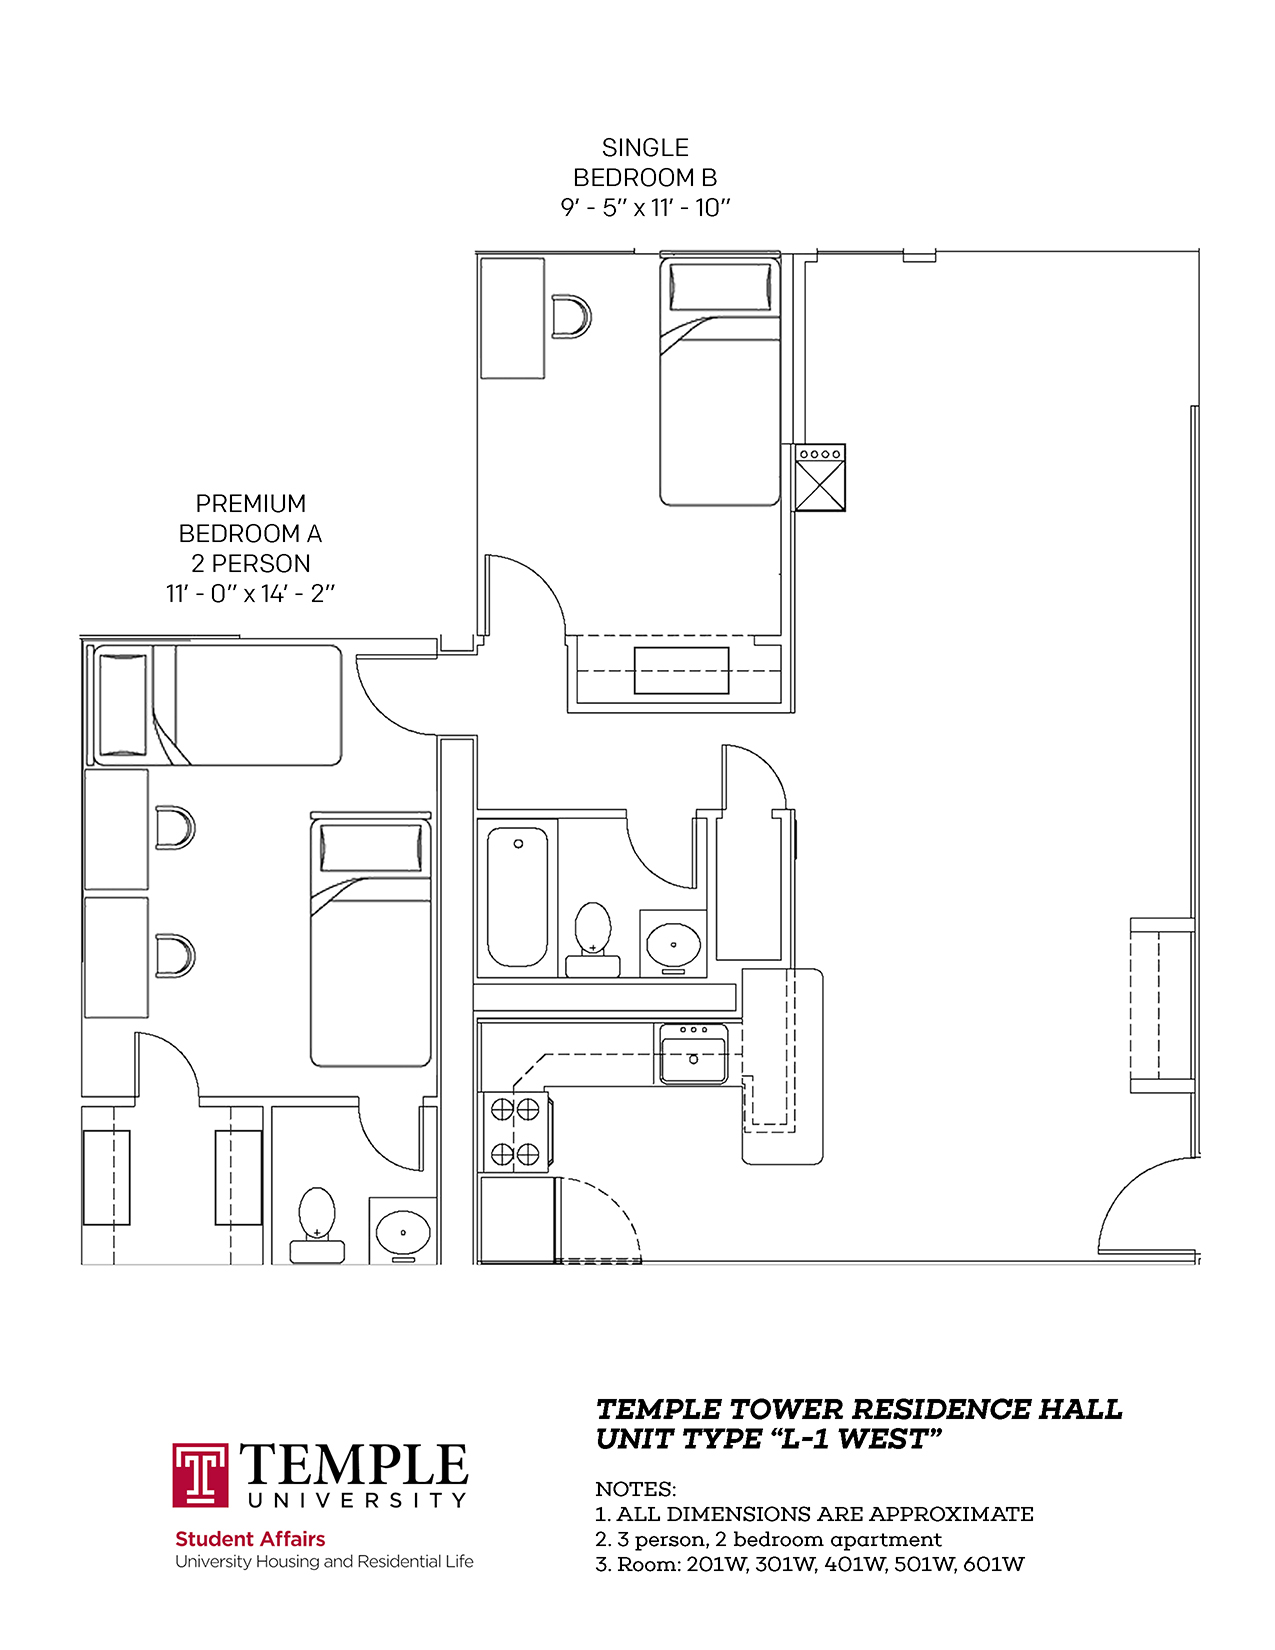 Temple Towers: Unit L1 West - 3 person, 2 bedroom Apartment